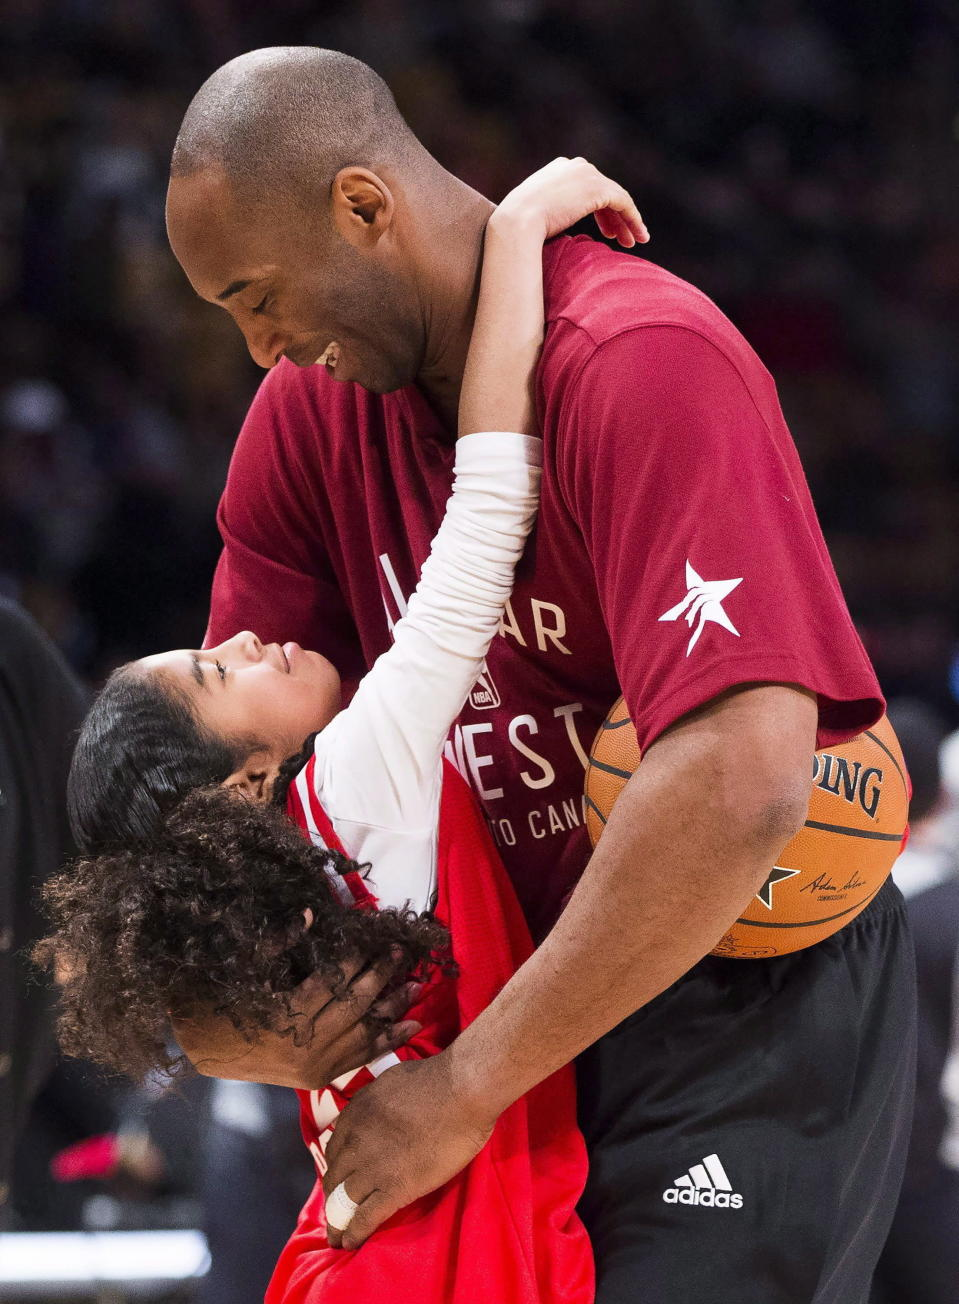 In this Feb. 14, 2016, file photo, Los Angeles Lakers Kobe Bryant (24) hugs his daughter Gianna on the court in warm-ups before first half NBA All-Star Game basketball action in Toronto. Bryant, his 13-year-old daughter, Gianna, and several others are dead after their helicopter went down in Southern California on Sunday, Jan. 26, 2020. (Mark Blinch/The Canadian Press via AP)